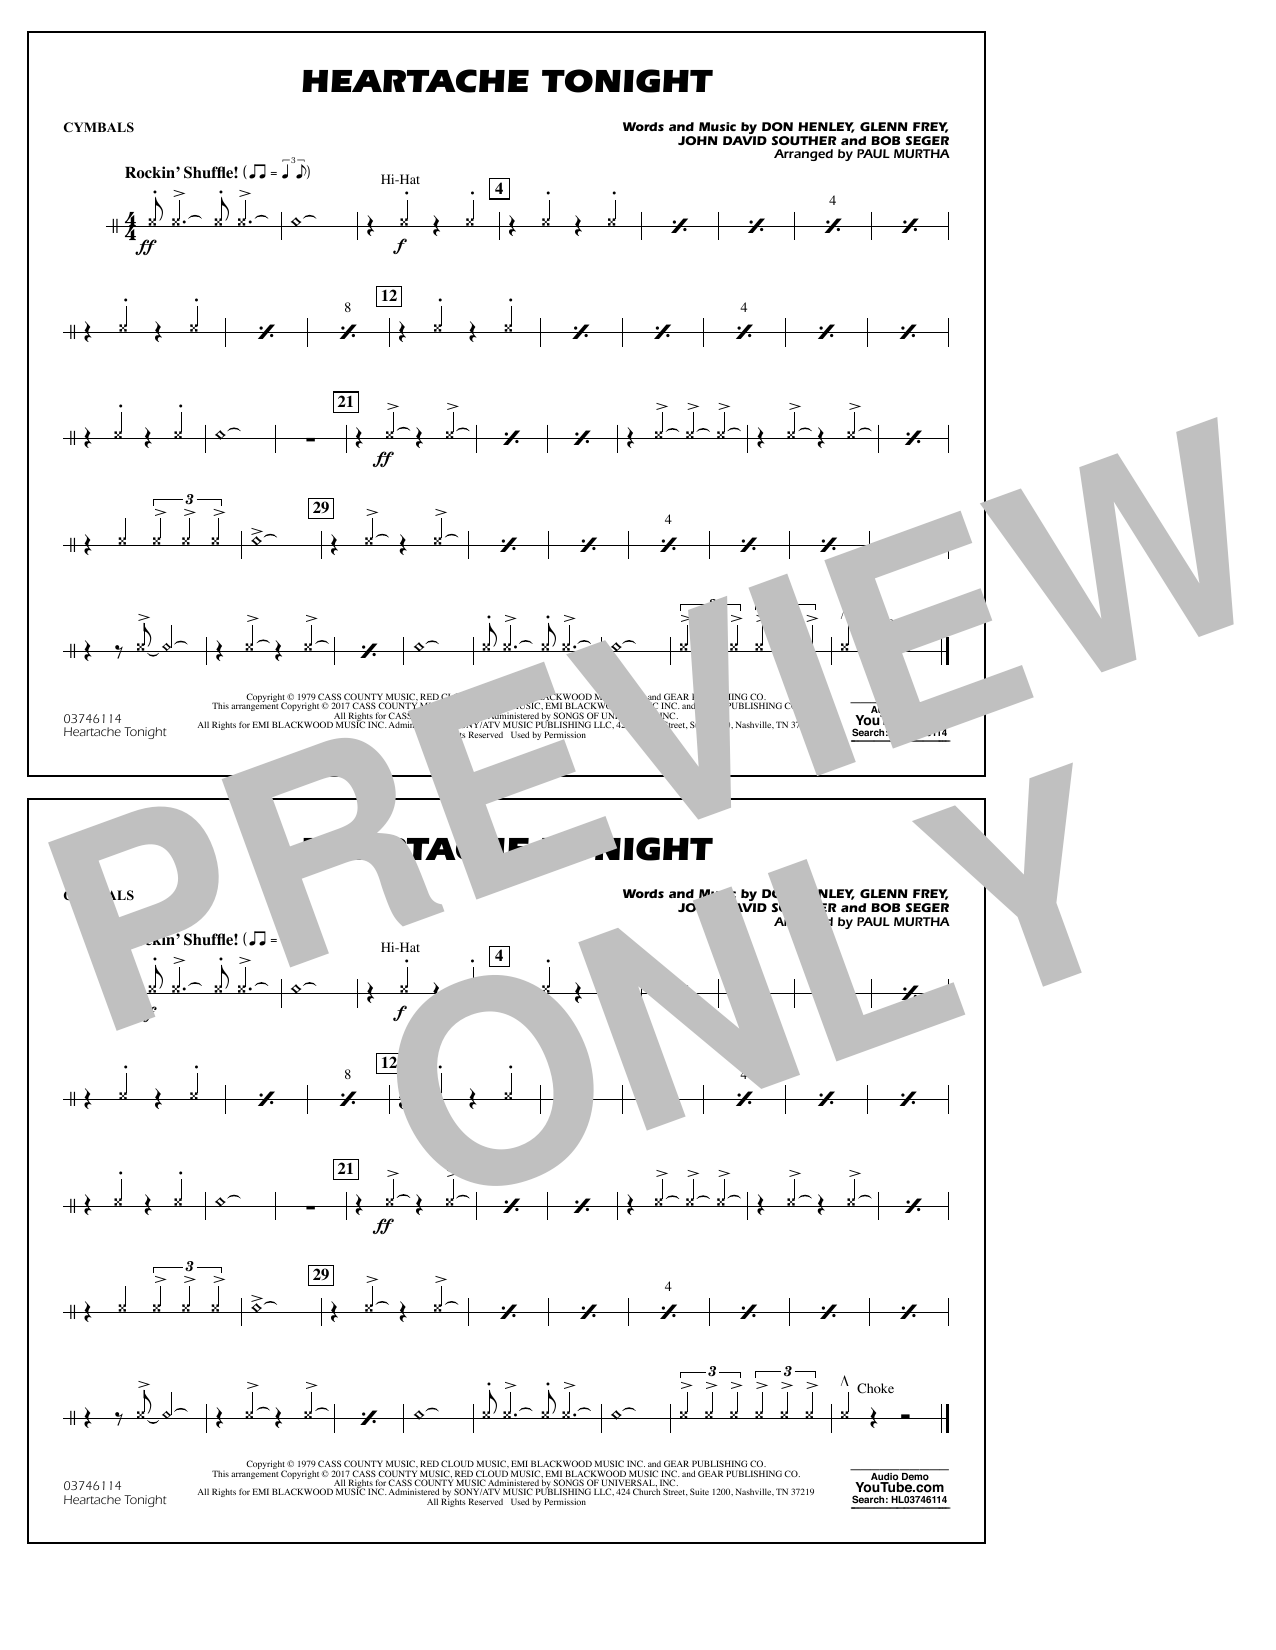 Heartache Tonight - Cymbals Sheet Music